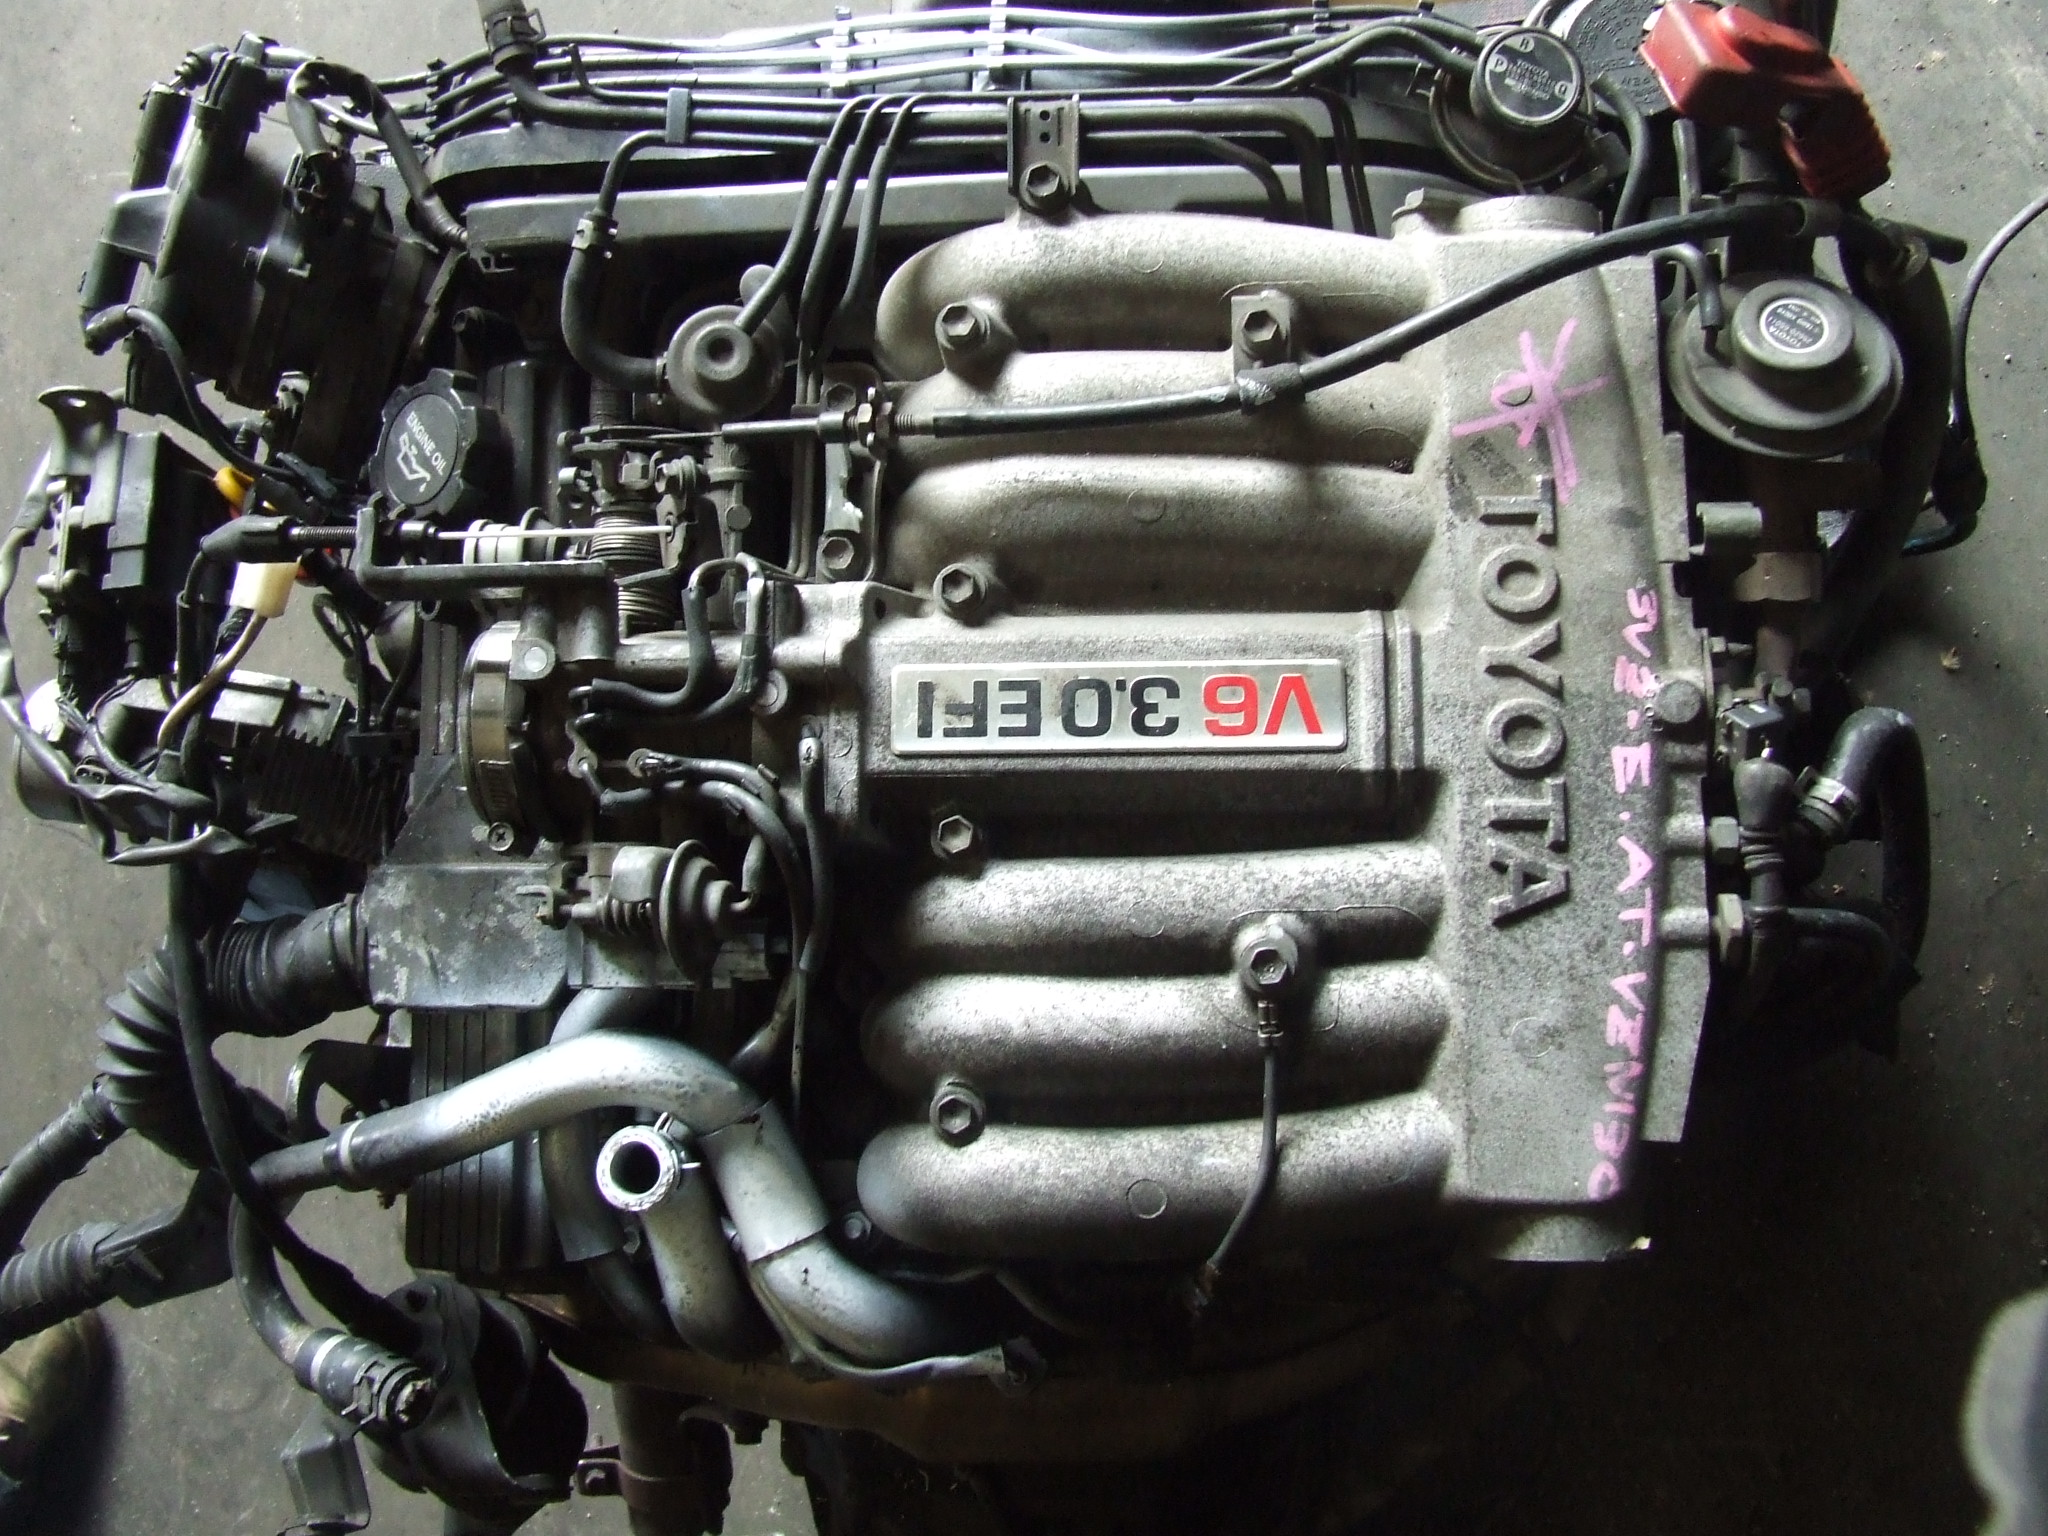 1989 toyota 3 0 v6 engine diagram wiring library engine details toyota 4runner engines used toyota 4runner engine engine details toyota harrier 3 0